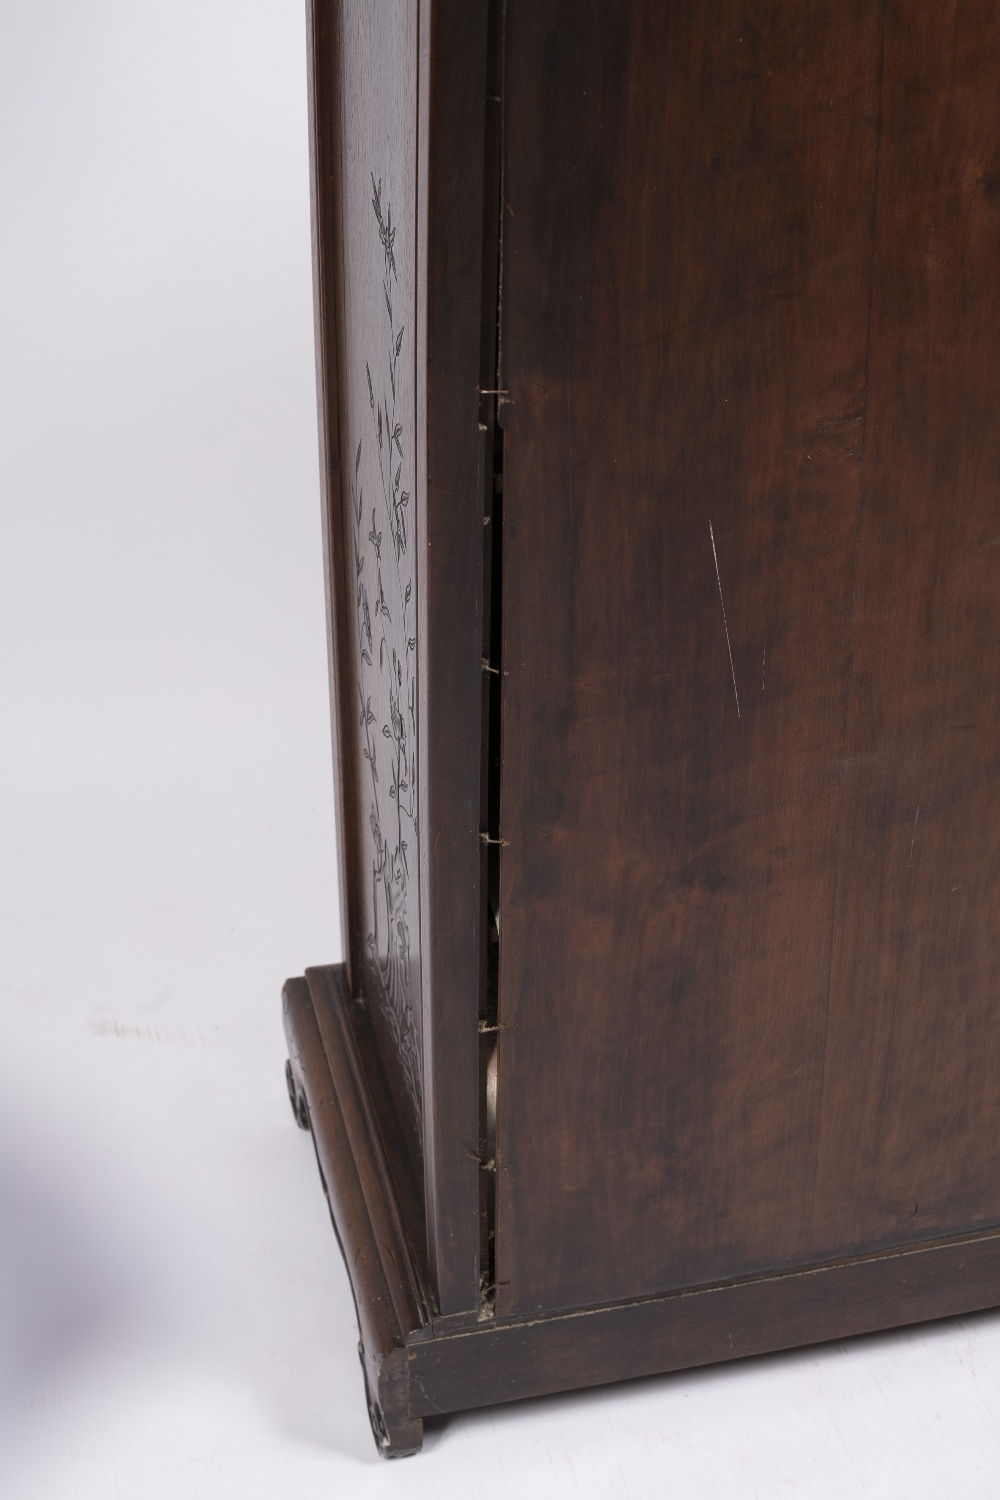 Inlaid hardwood cabinet Chinese, 19th Century with raised back inlaid with mother of pearl and - Image 4 of 5